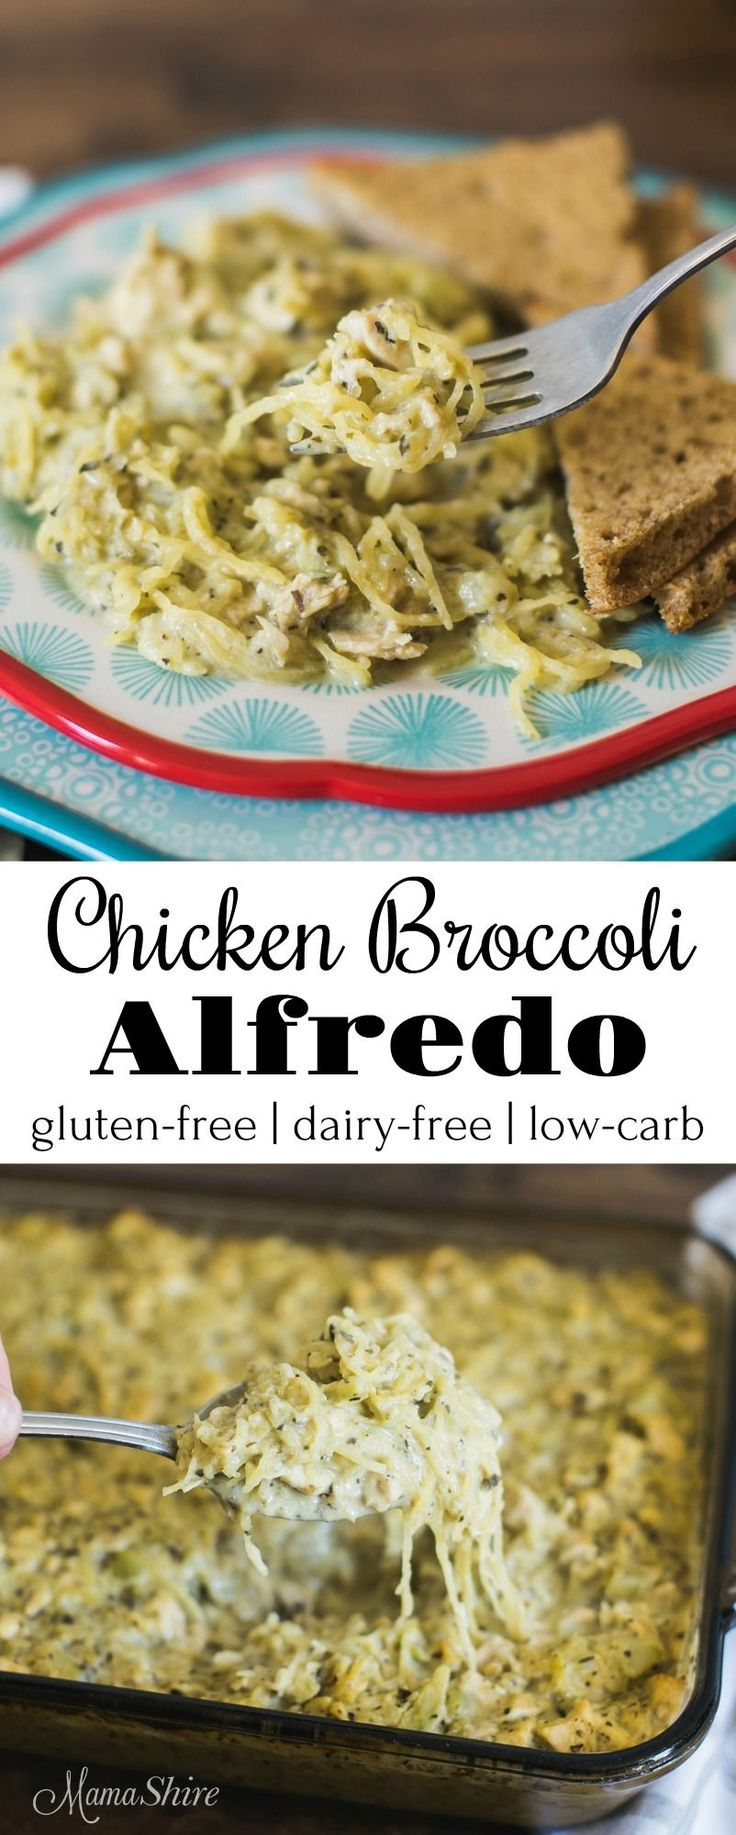 Delicious Chicken Broccoli Alfredo made with spaghetti squash. Gluten free, Dairy free, Low carb, and Trim Healthy Mama-S